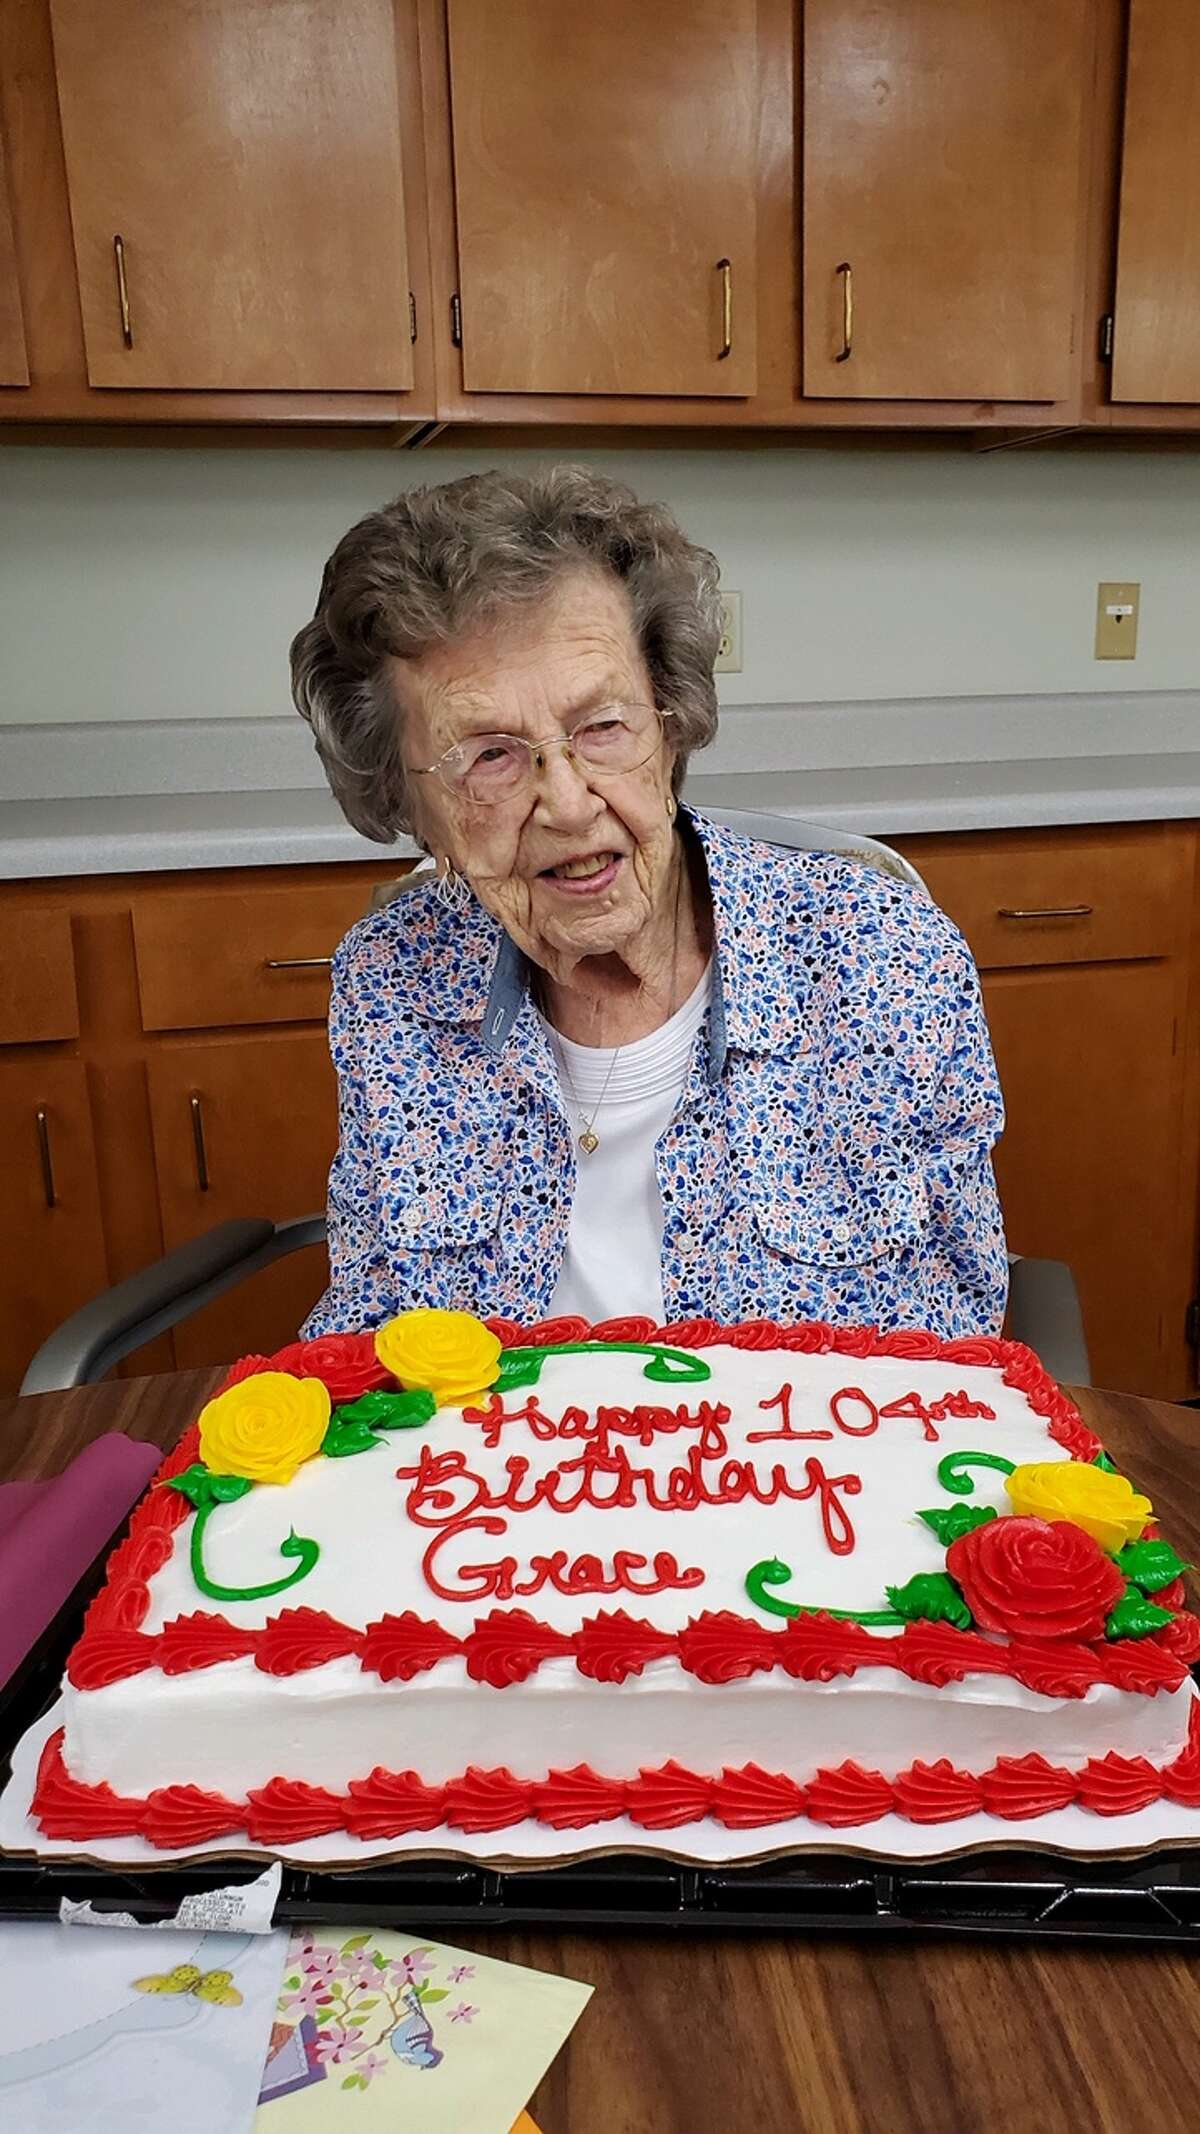 Colonie Senior Service Centers resident Grace Freer, recently turned 104 years old. The center said it prides itself that Grace is an original resident to Sheehy Manor, moving in over two decades ago, and that she is still living independently.